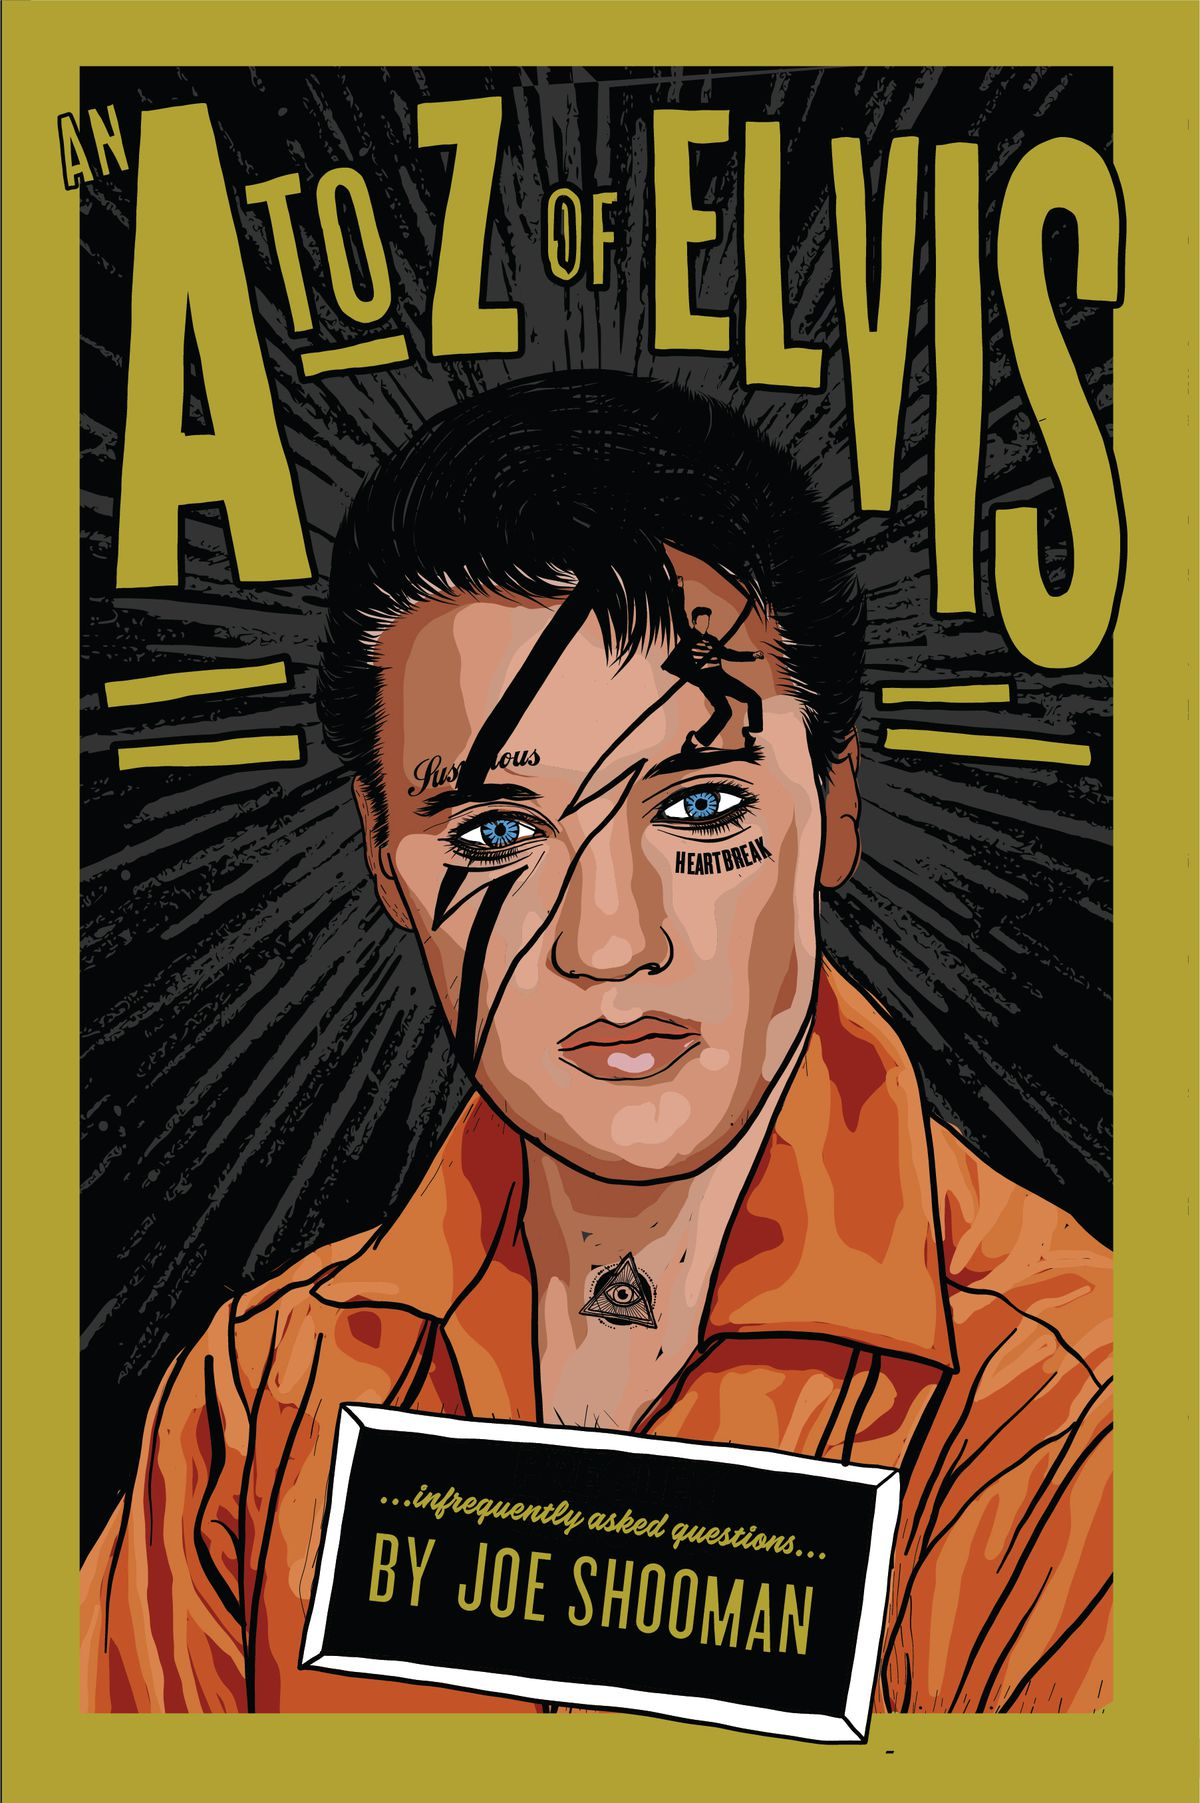 """""""An A to Z of Elvis"""""""